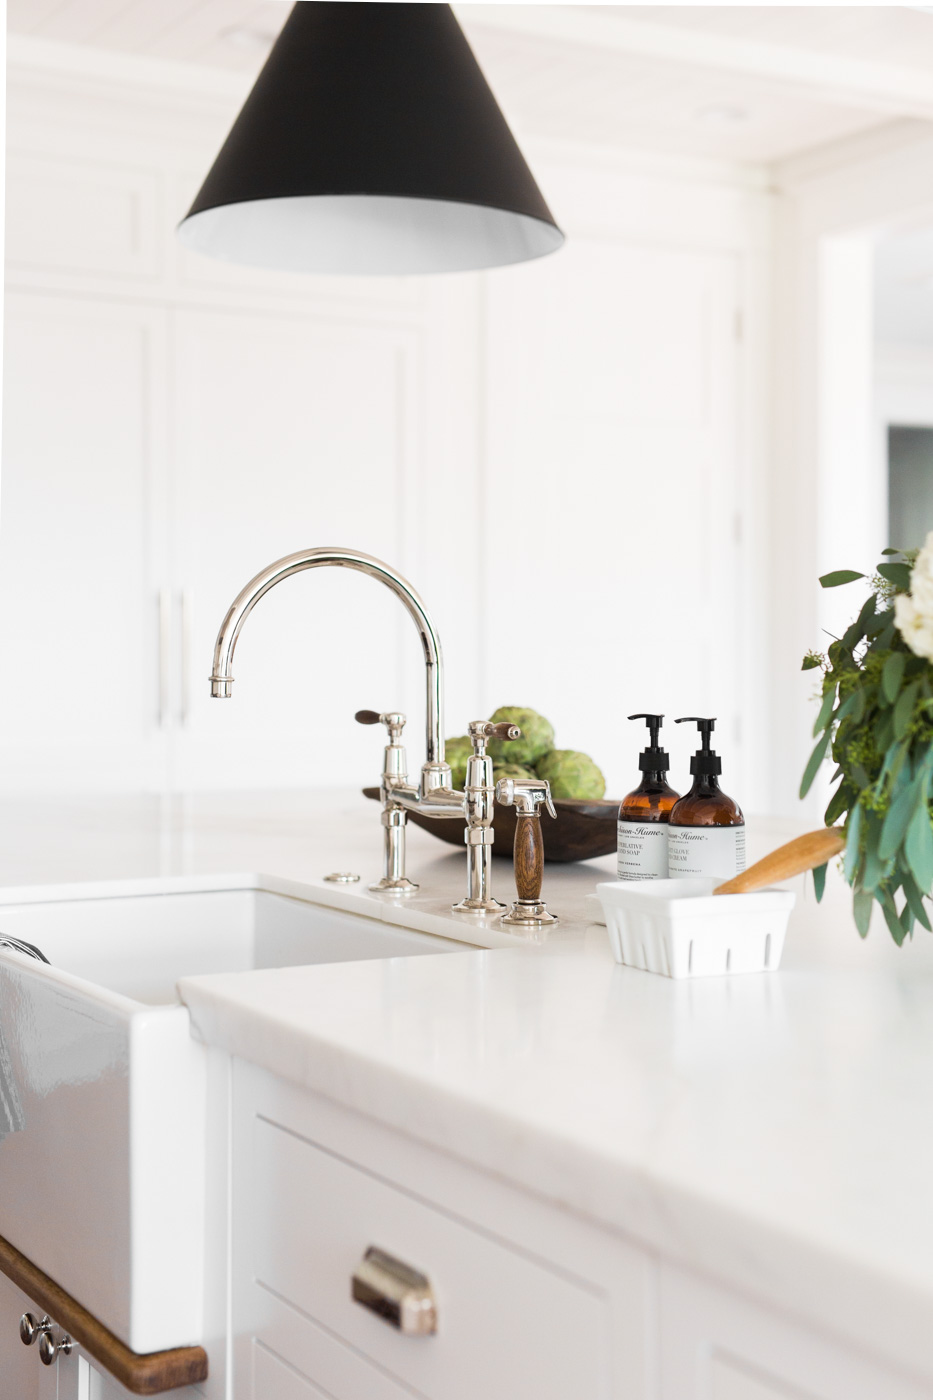 Waterworks faucet with wood handles || Studio McGee